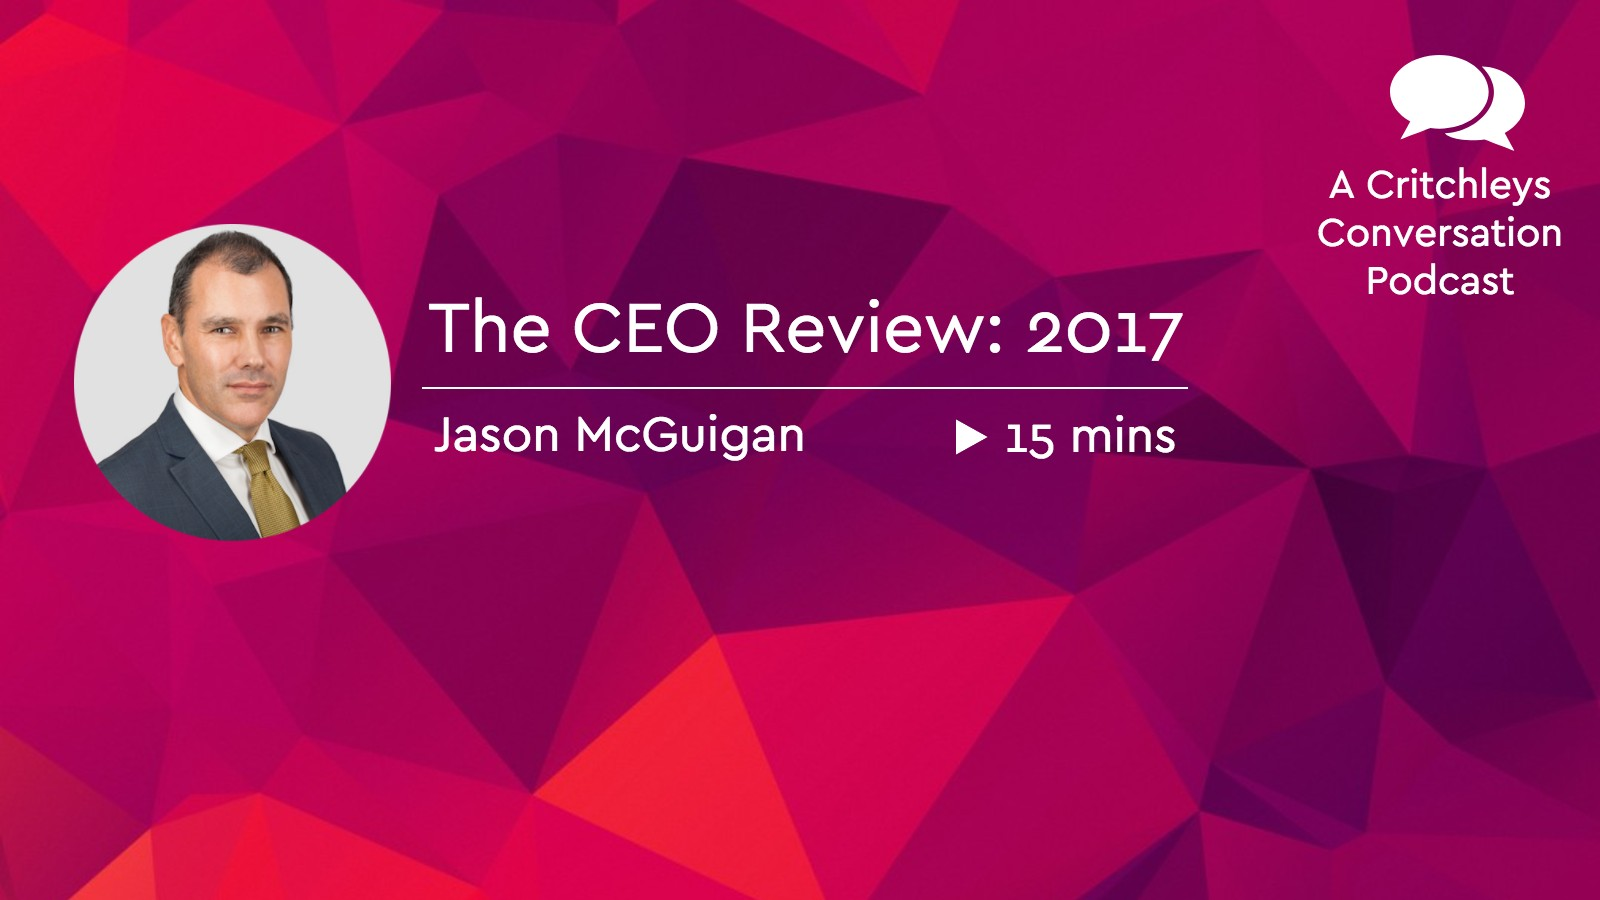 The CEO Review of 2017